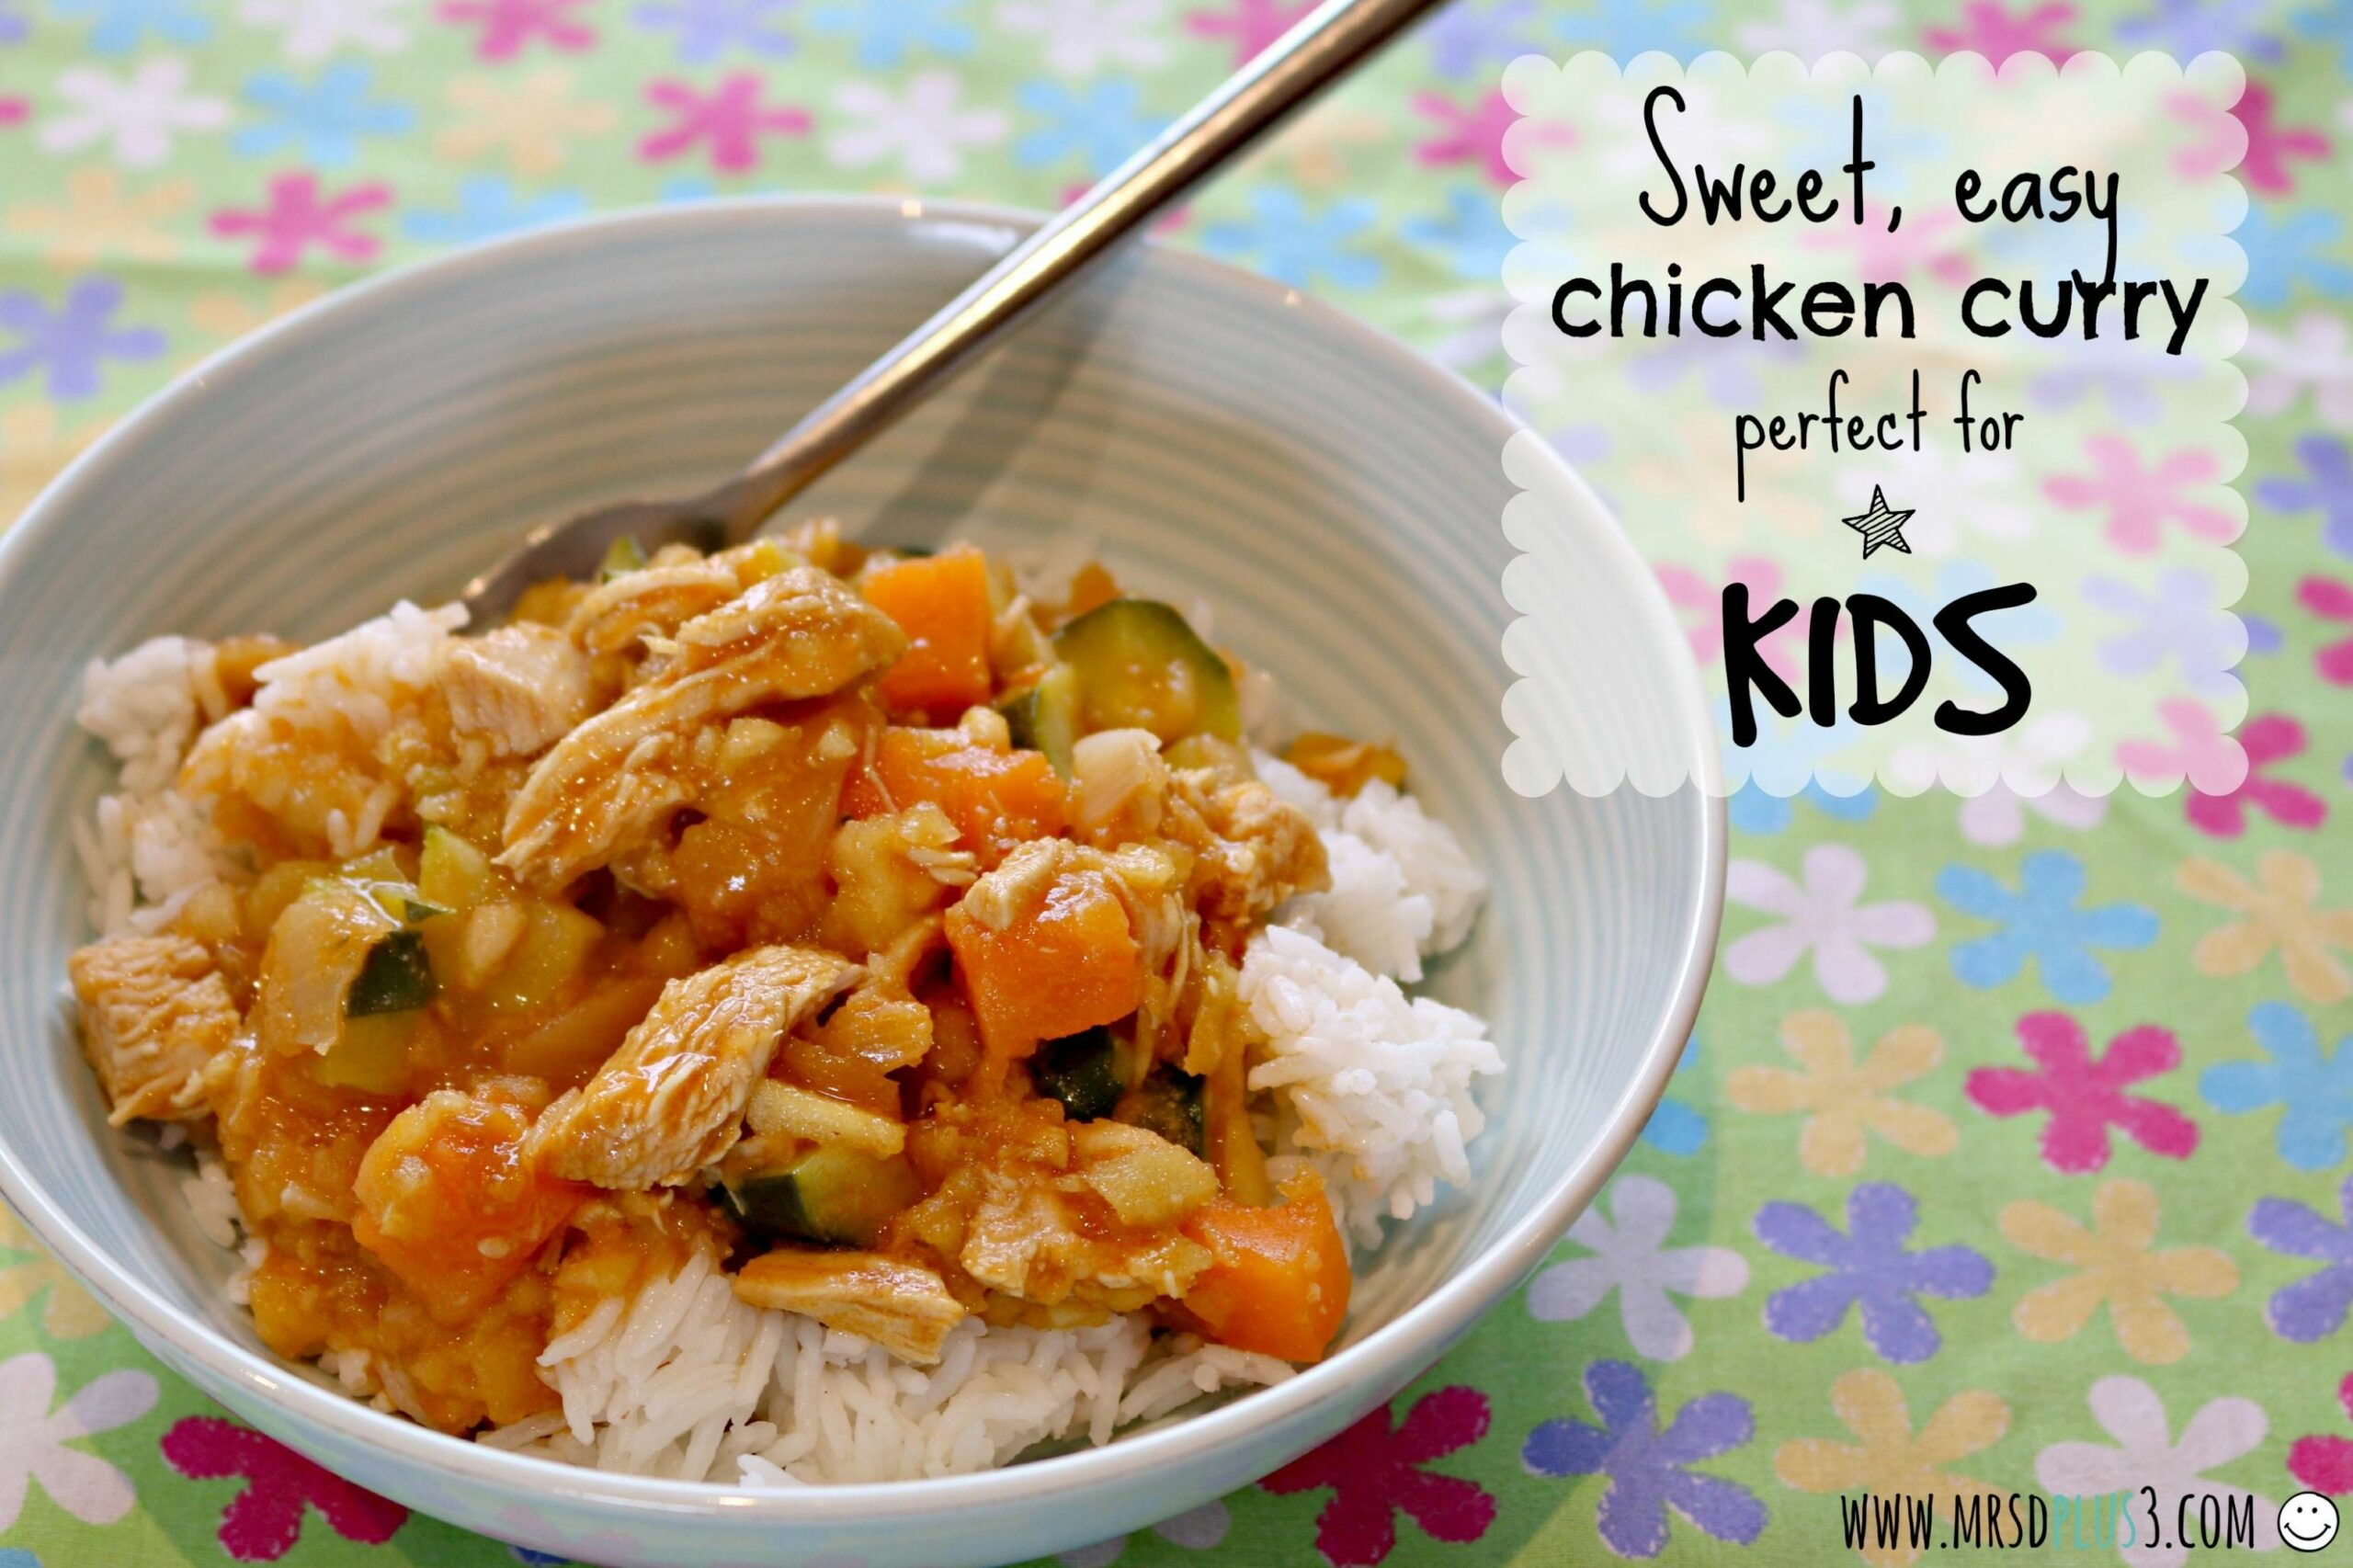 Thermomix Recipe: Easy Sweet Chicken Curry - Recipes Chicken Breast Thermomix